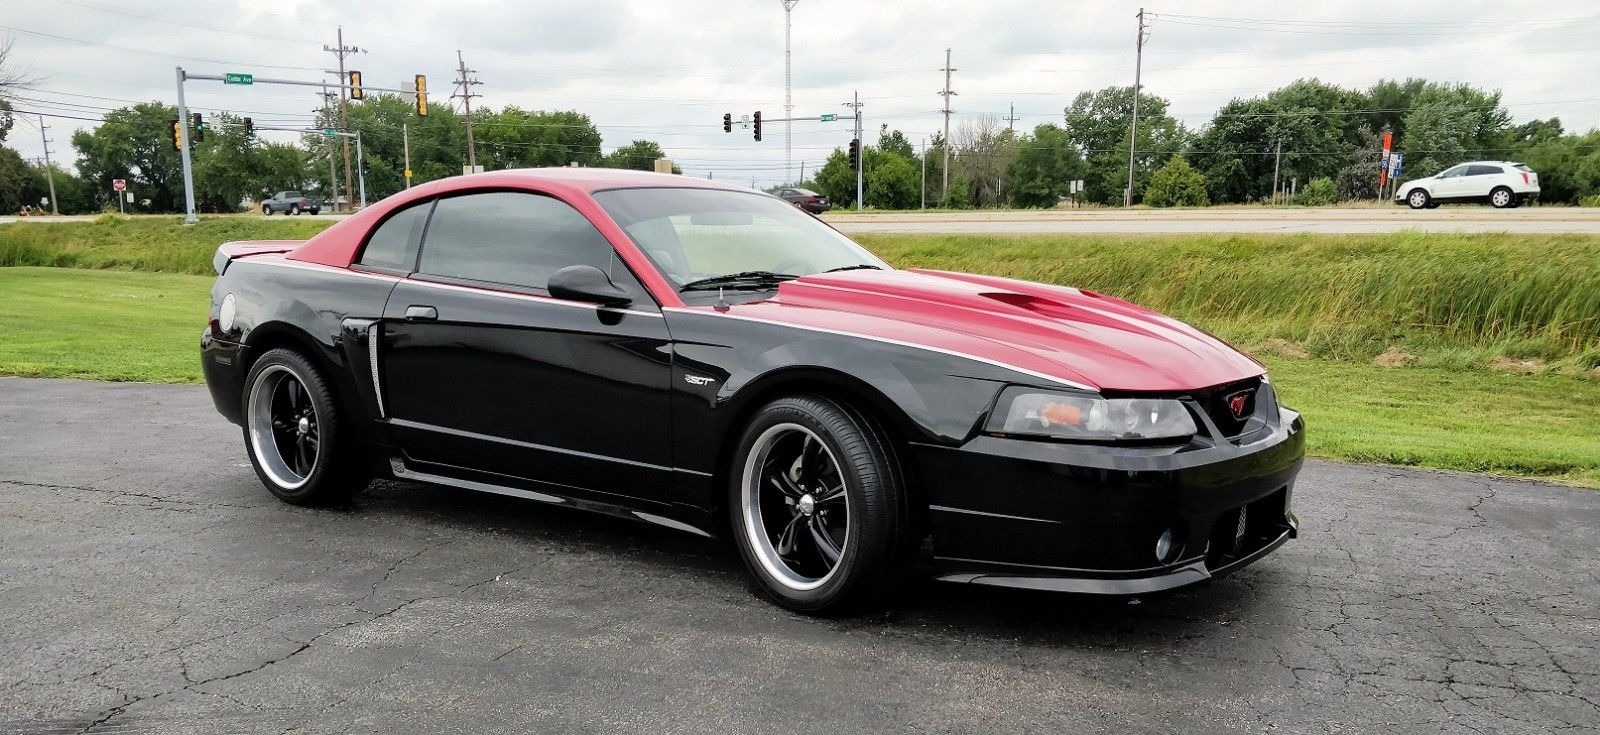 Amazing 2001 Ford Mustang Gt Nice Coupe Low Miles Fast Lots Of Upgrades No Reserve 2018